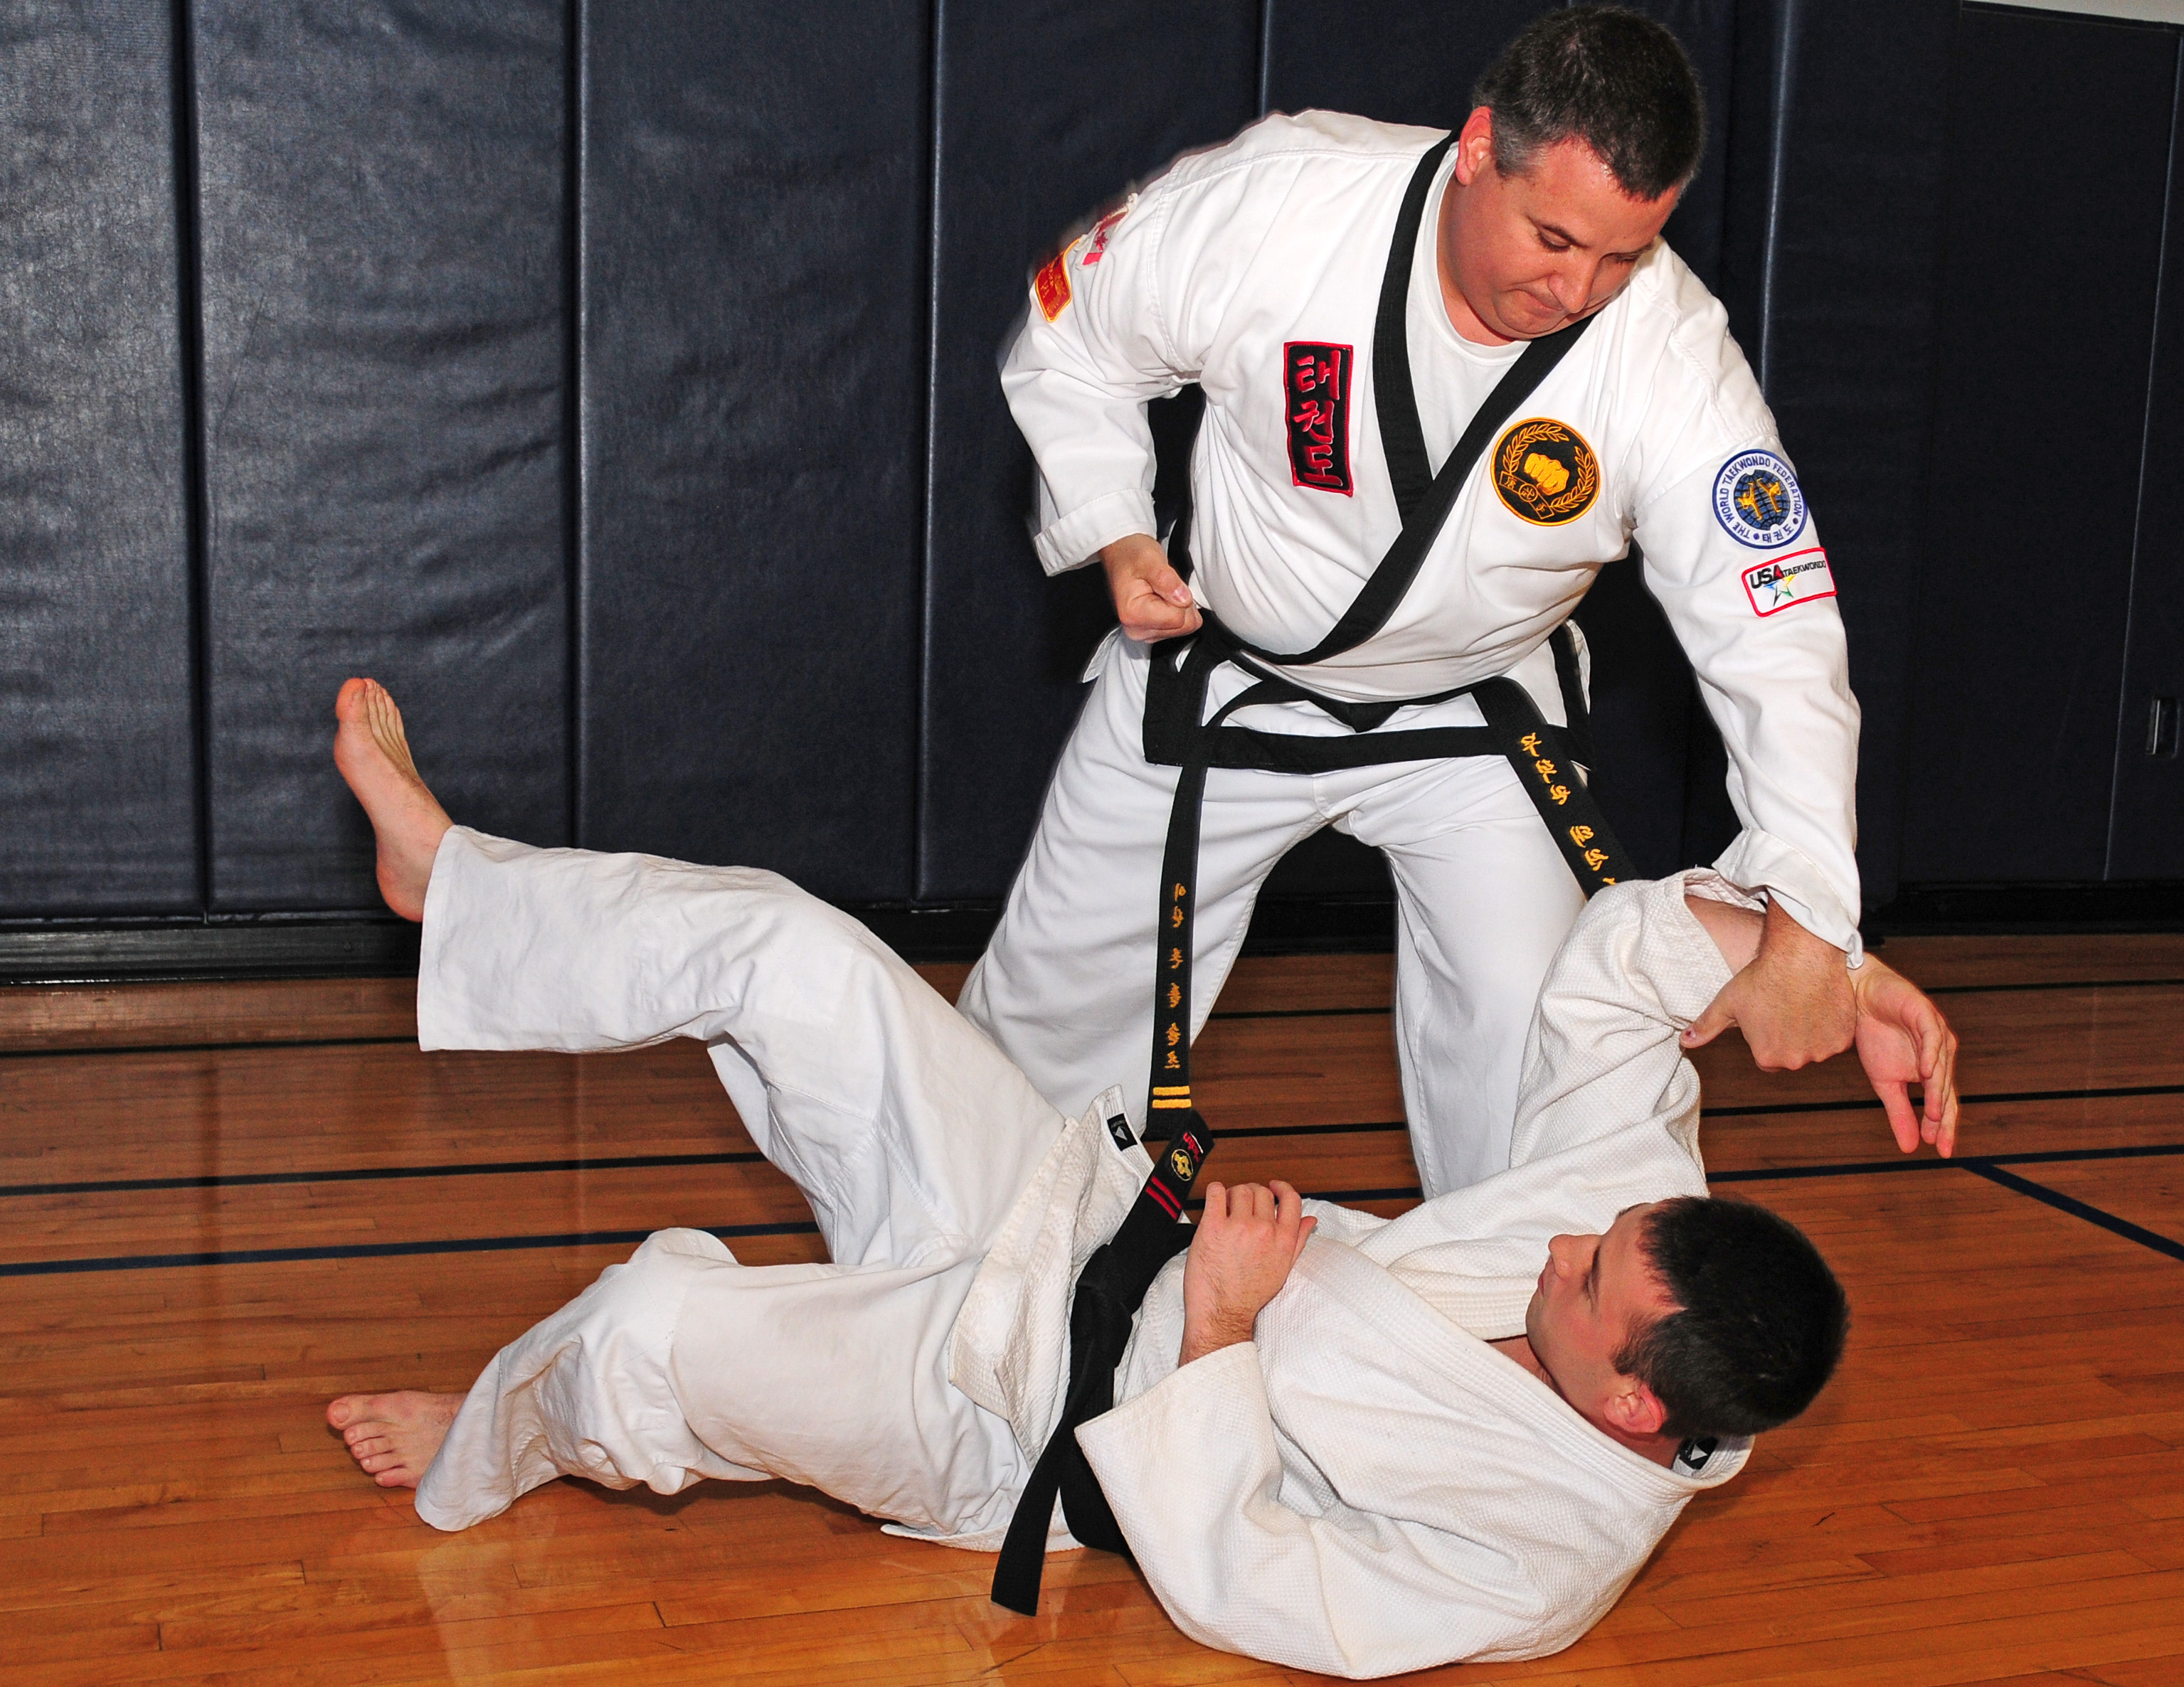 Base Gym Hosts Free Martial Arts Classes Gt Niagara Falls Air Reserve Station Gt Article Display